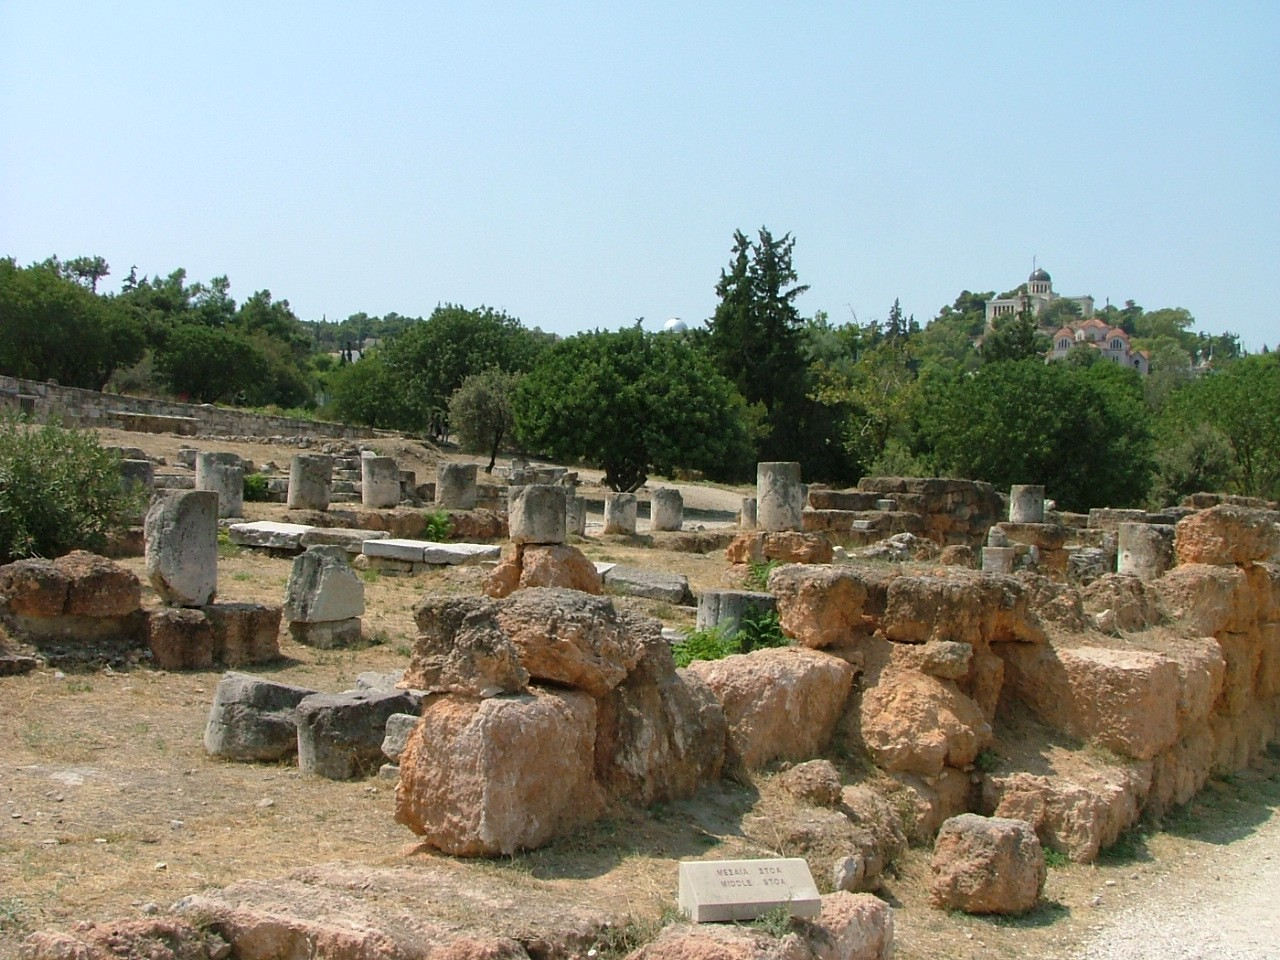 https://i0.wp.com/upload.wikimedia.org/wikipedia/commons/5/50/Middle_Stoa_-_Athens_Roman_Agora_1.JPG